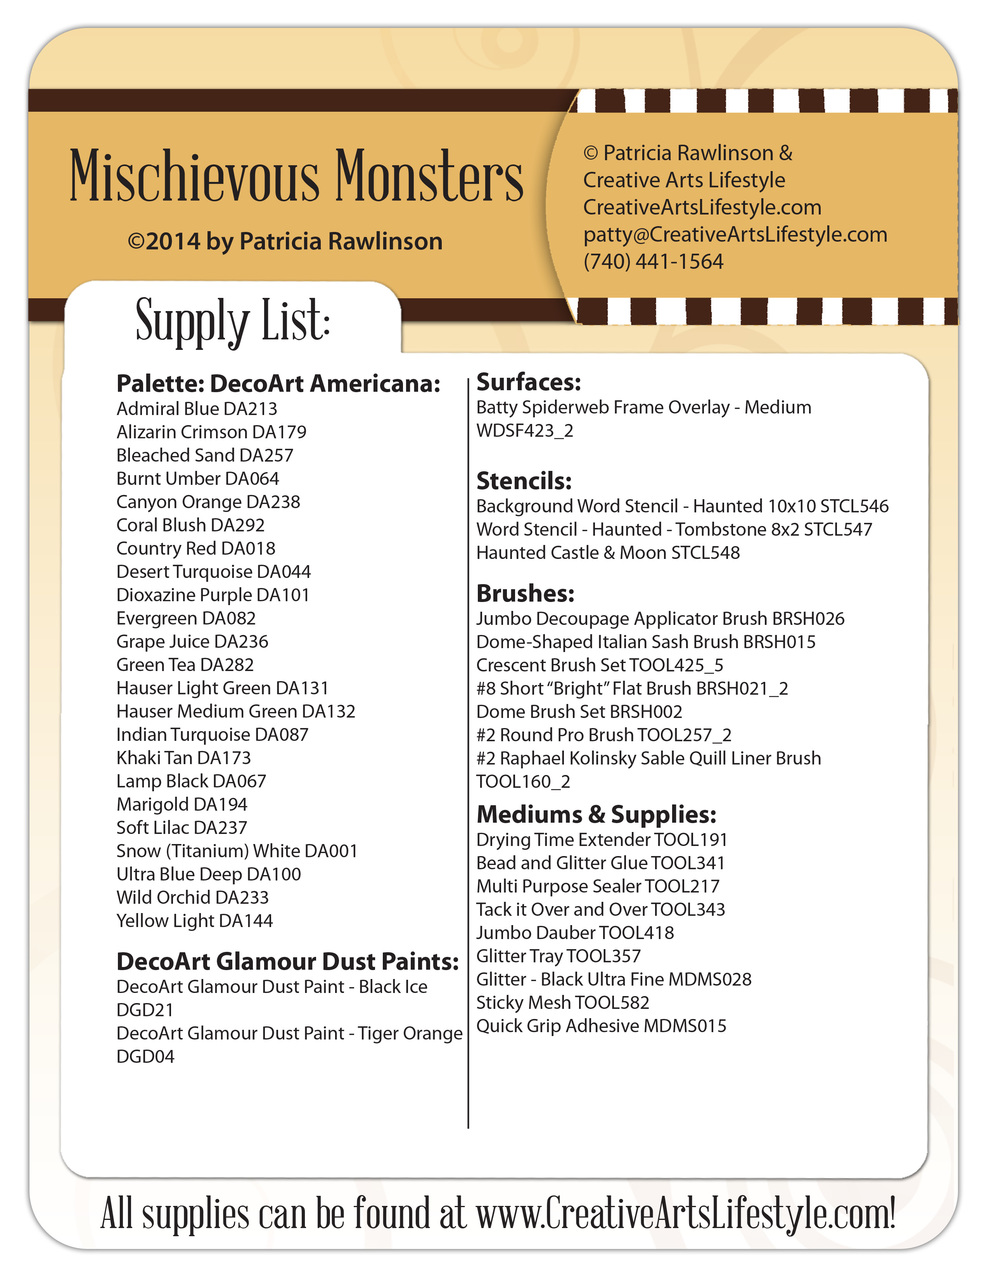 Mischievous Monsters DVD & Pattern Packet - Patricia Rawlinson